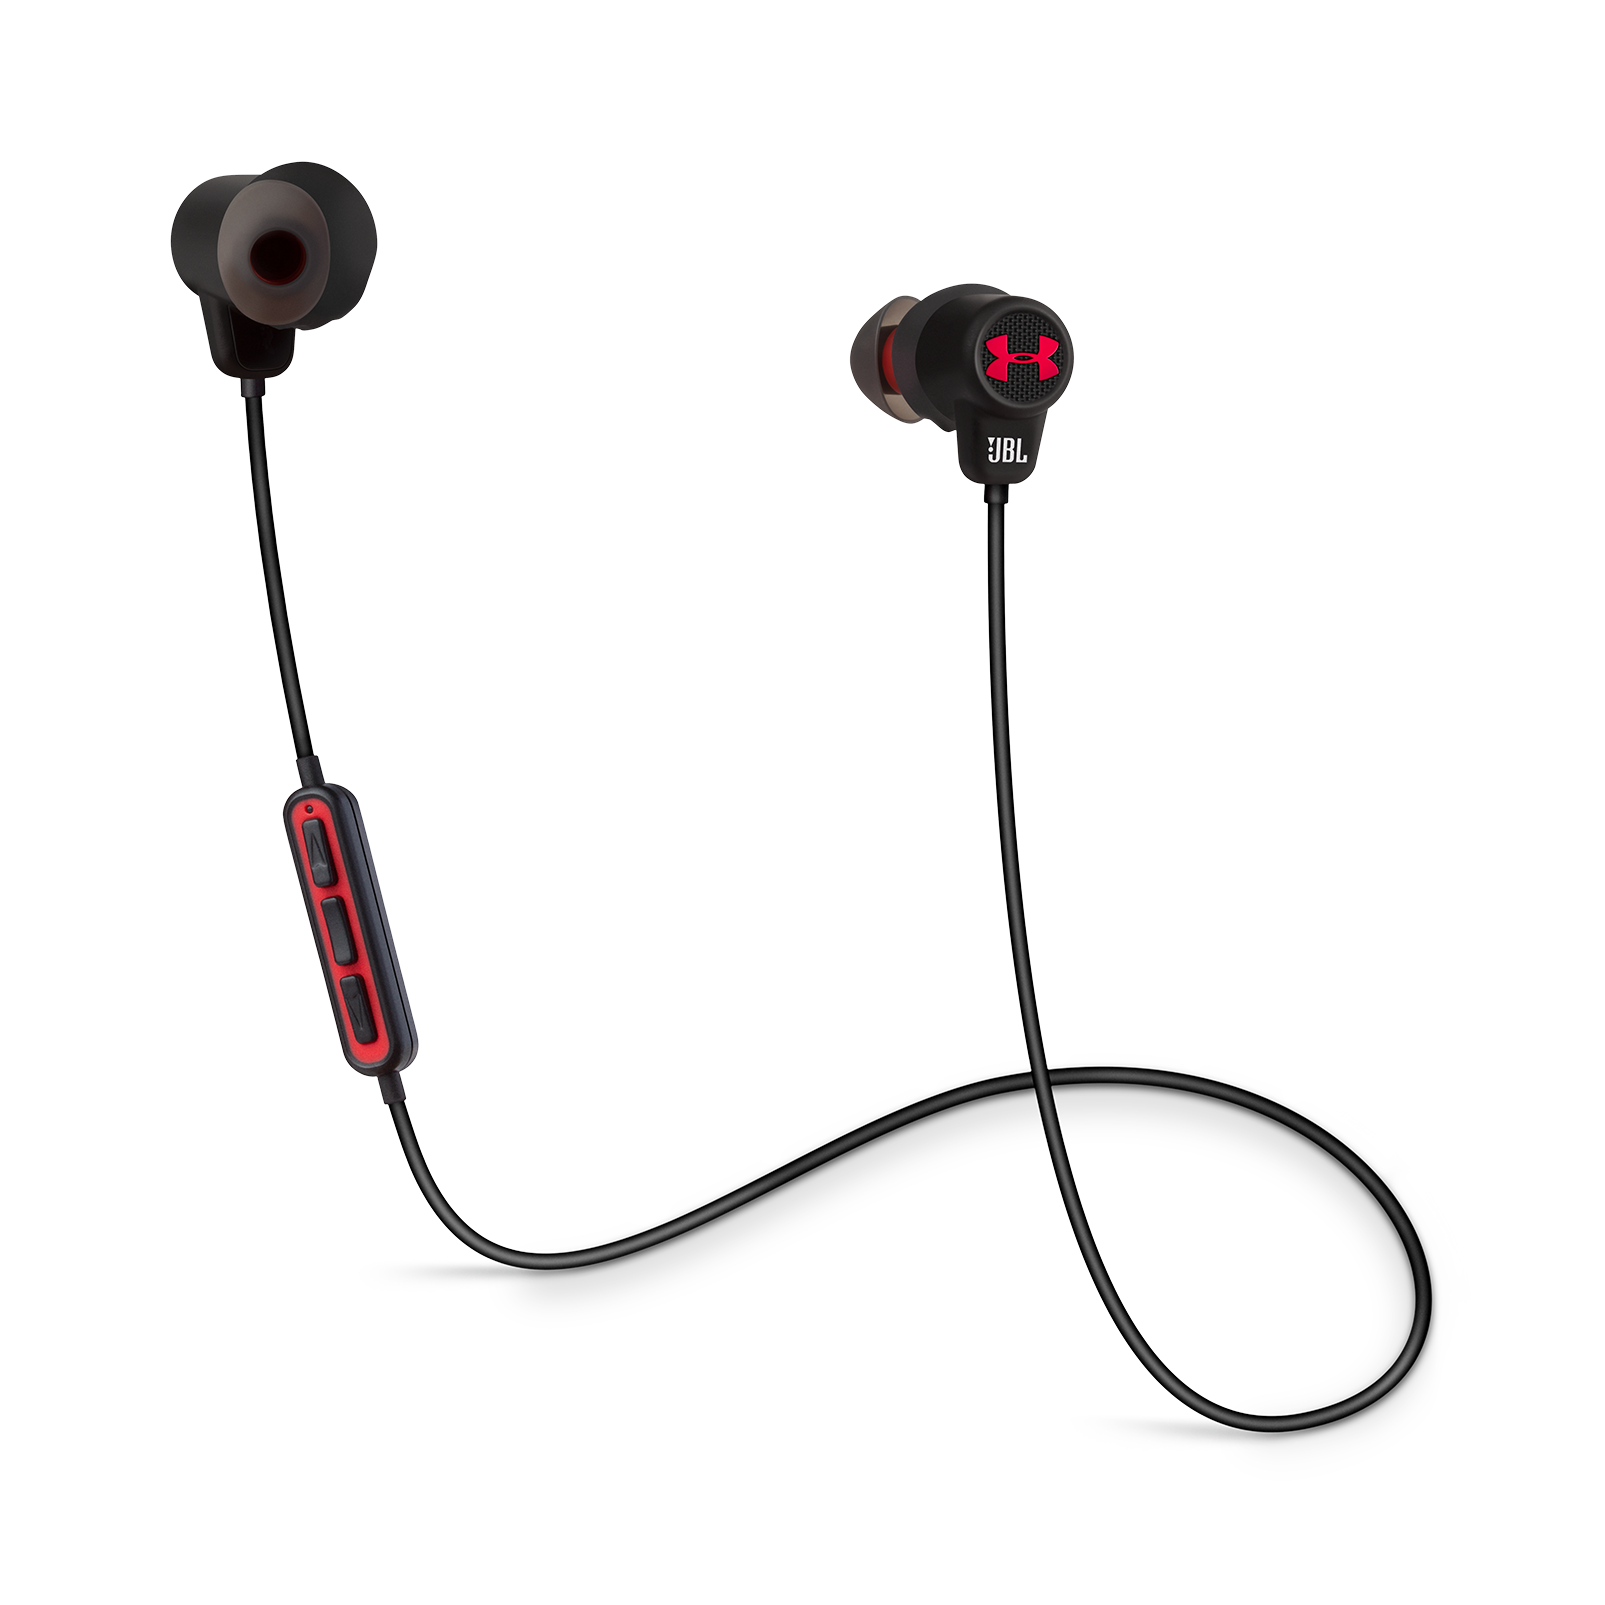 f4630b41c61 Under Armour Sport Wireless | Wireless in-ear headphones for athletes